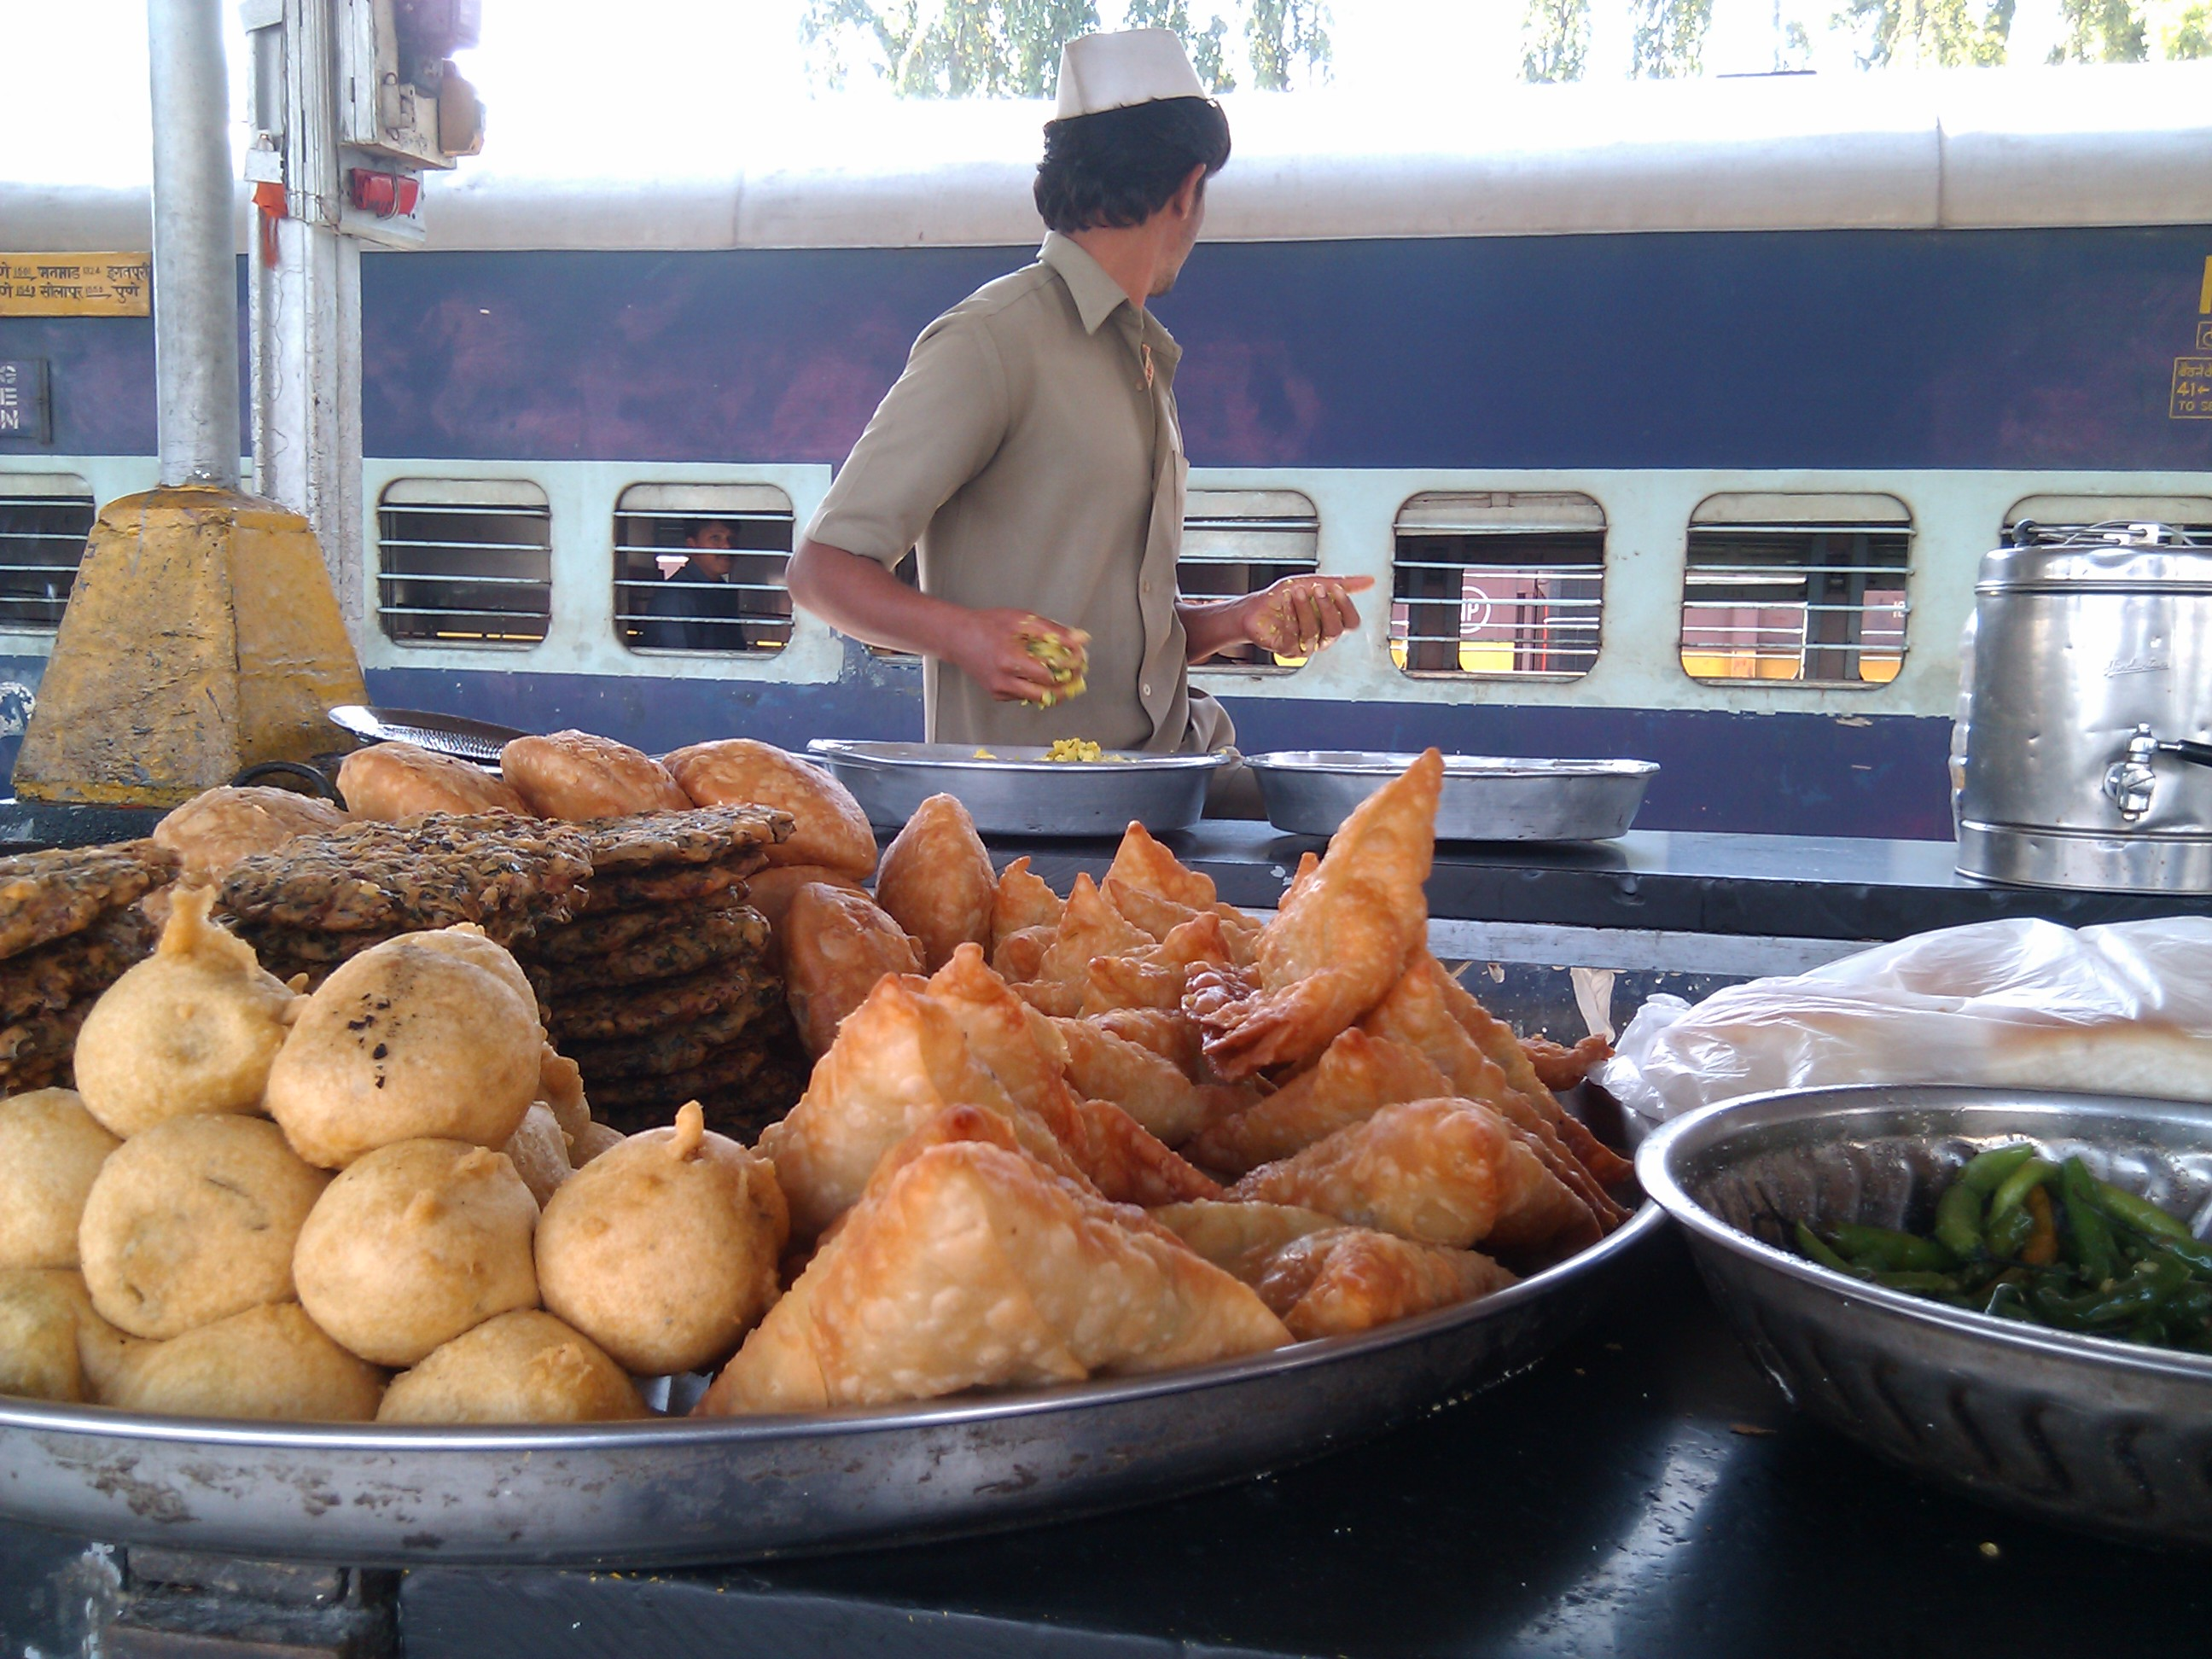 Get food delivered to your berth at Bhopal Railway Station